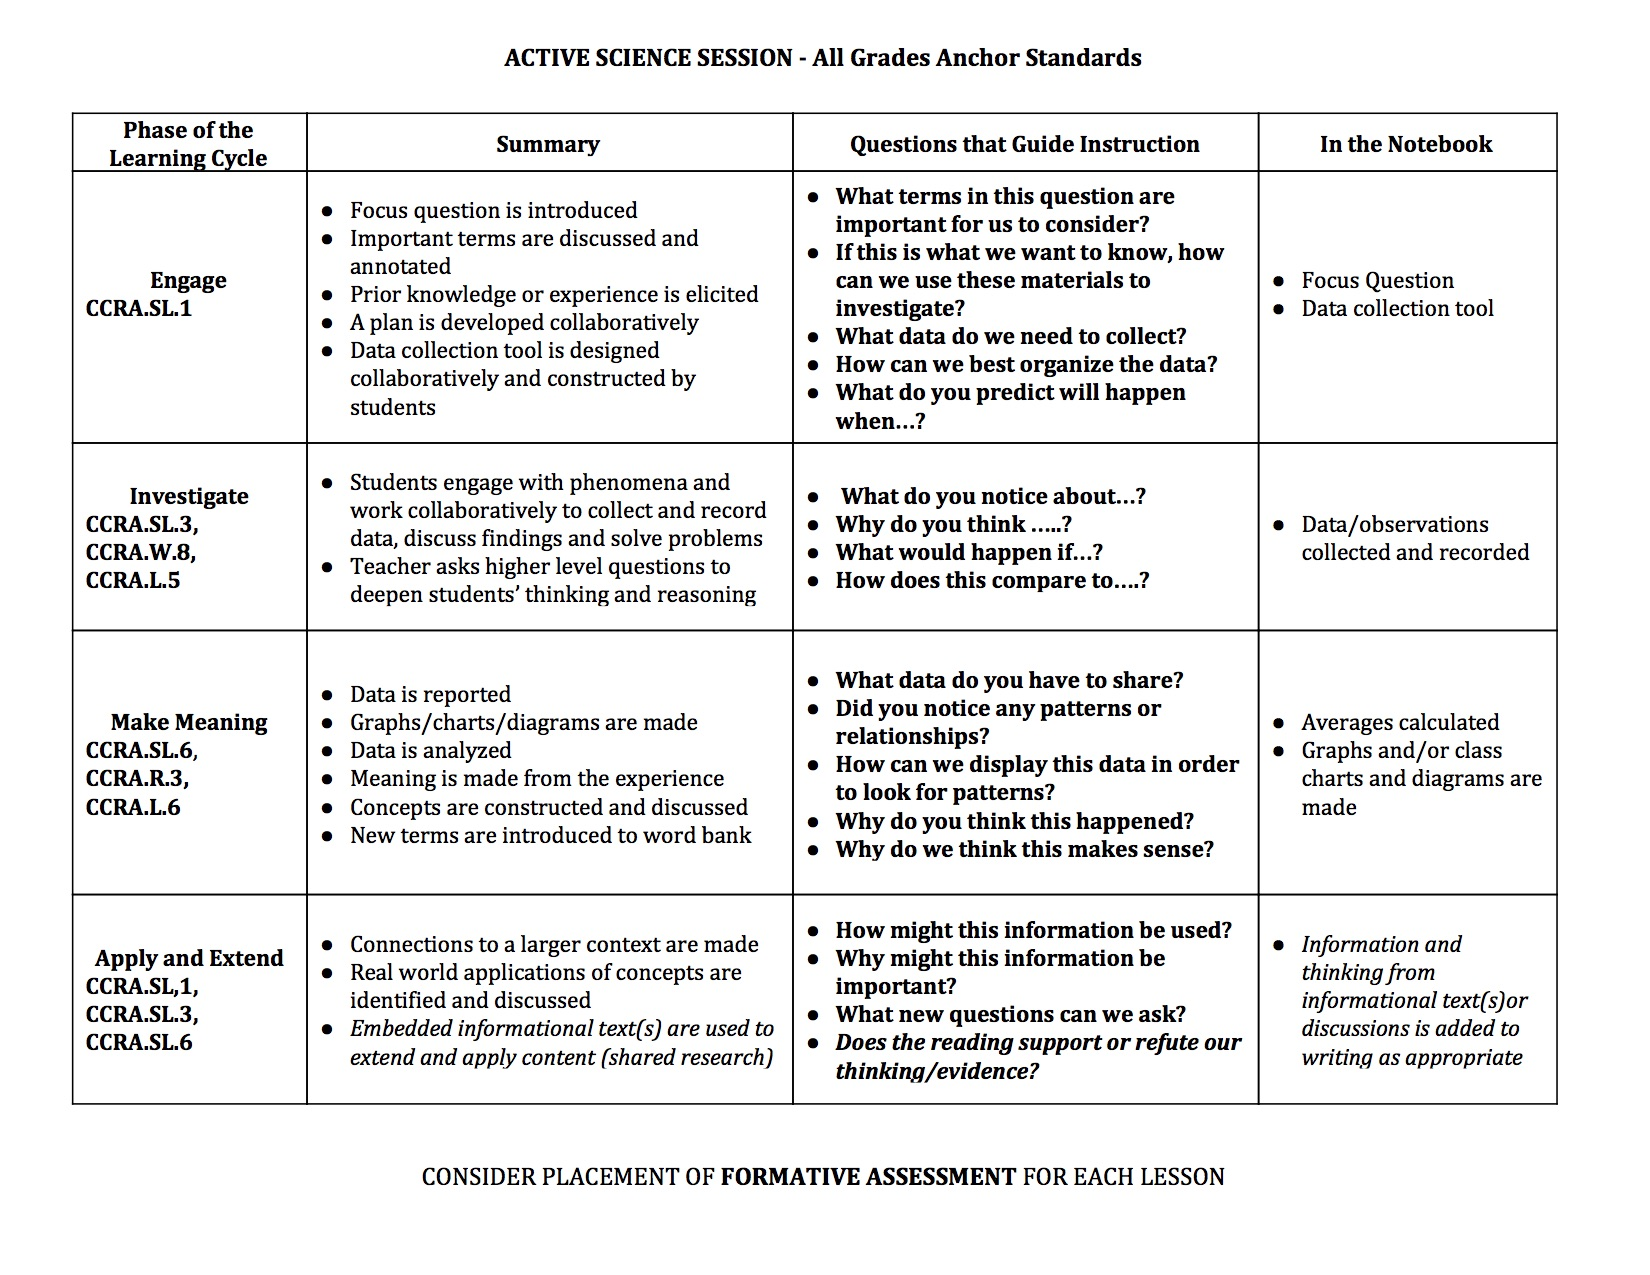 Phases of Learning-Anchor Standards